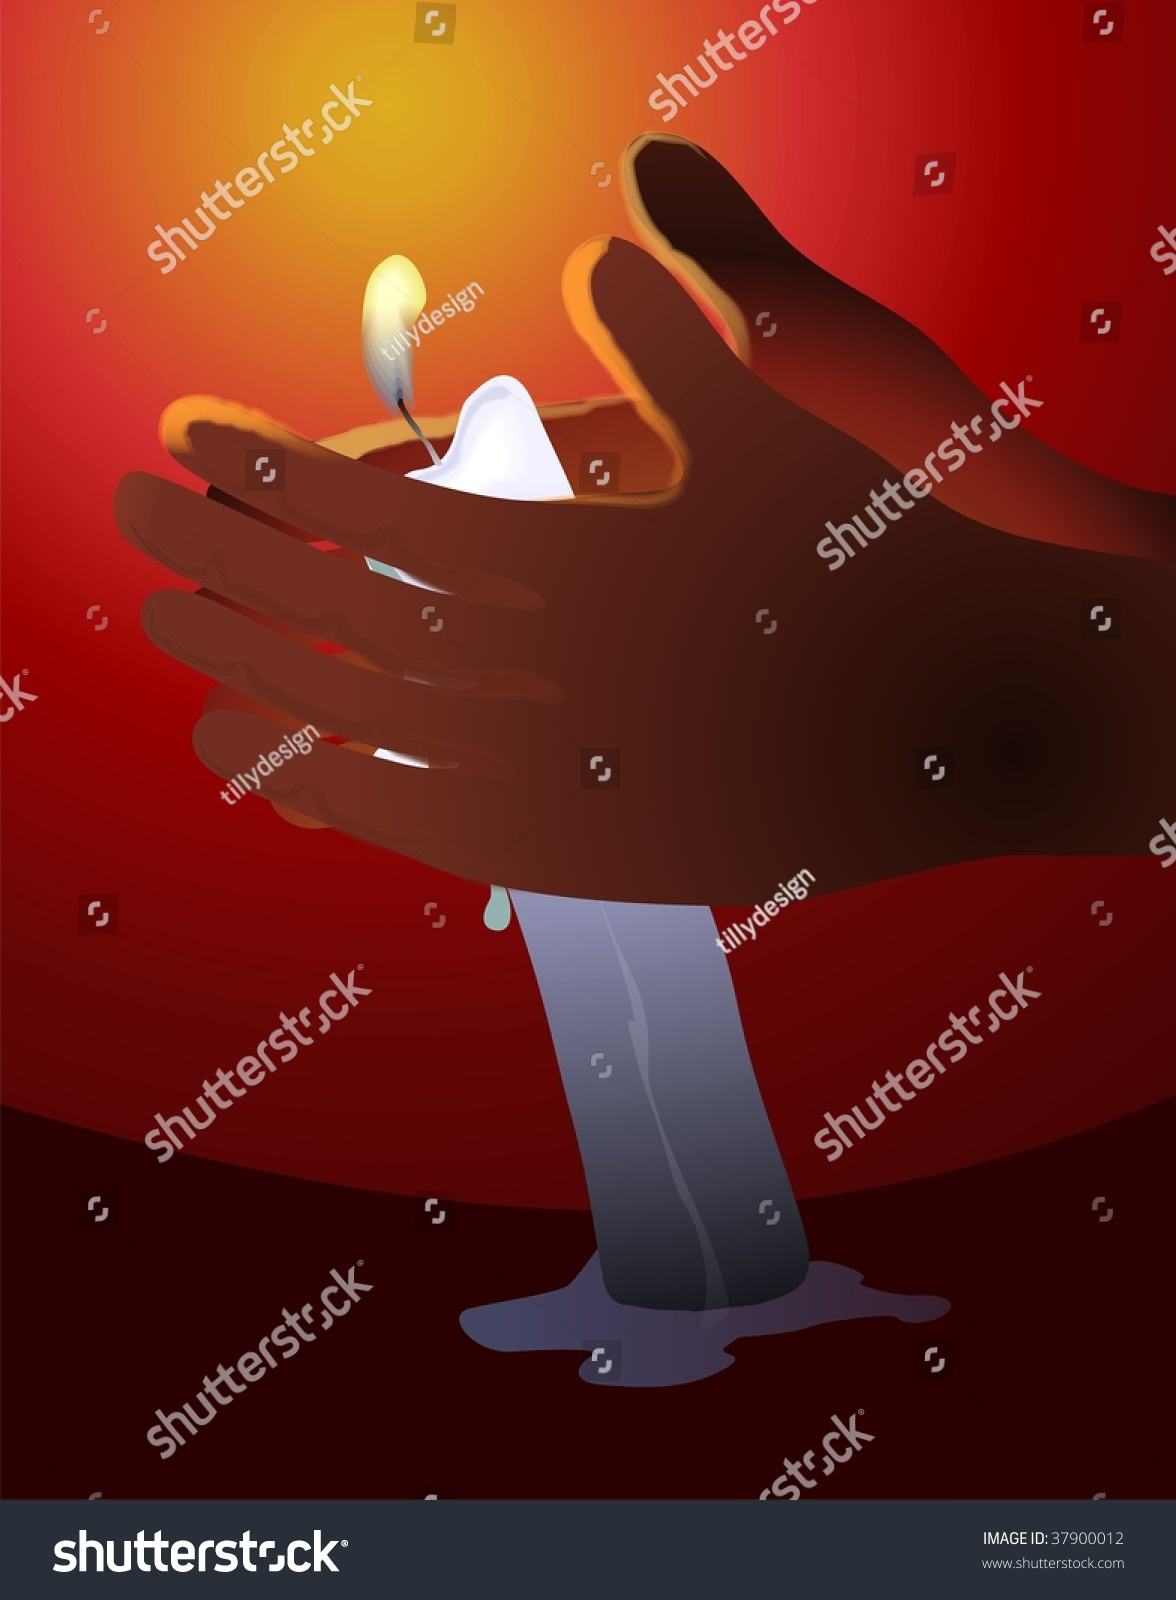 Candle Light Painting Digital Painting Hands Candle Light Stock Illustration 37900012